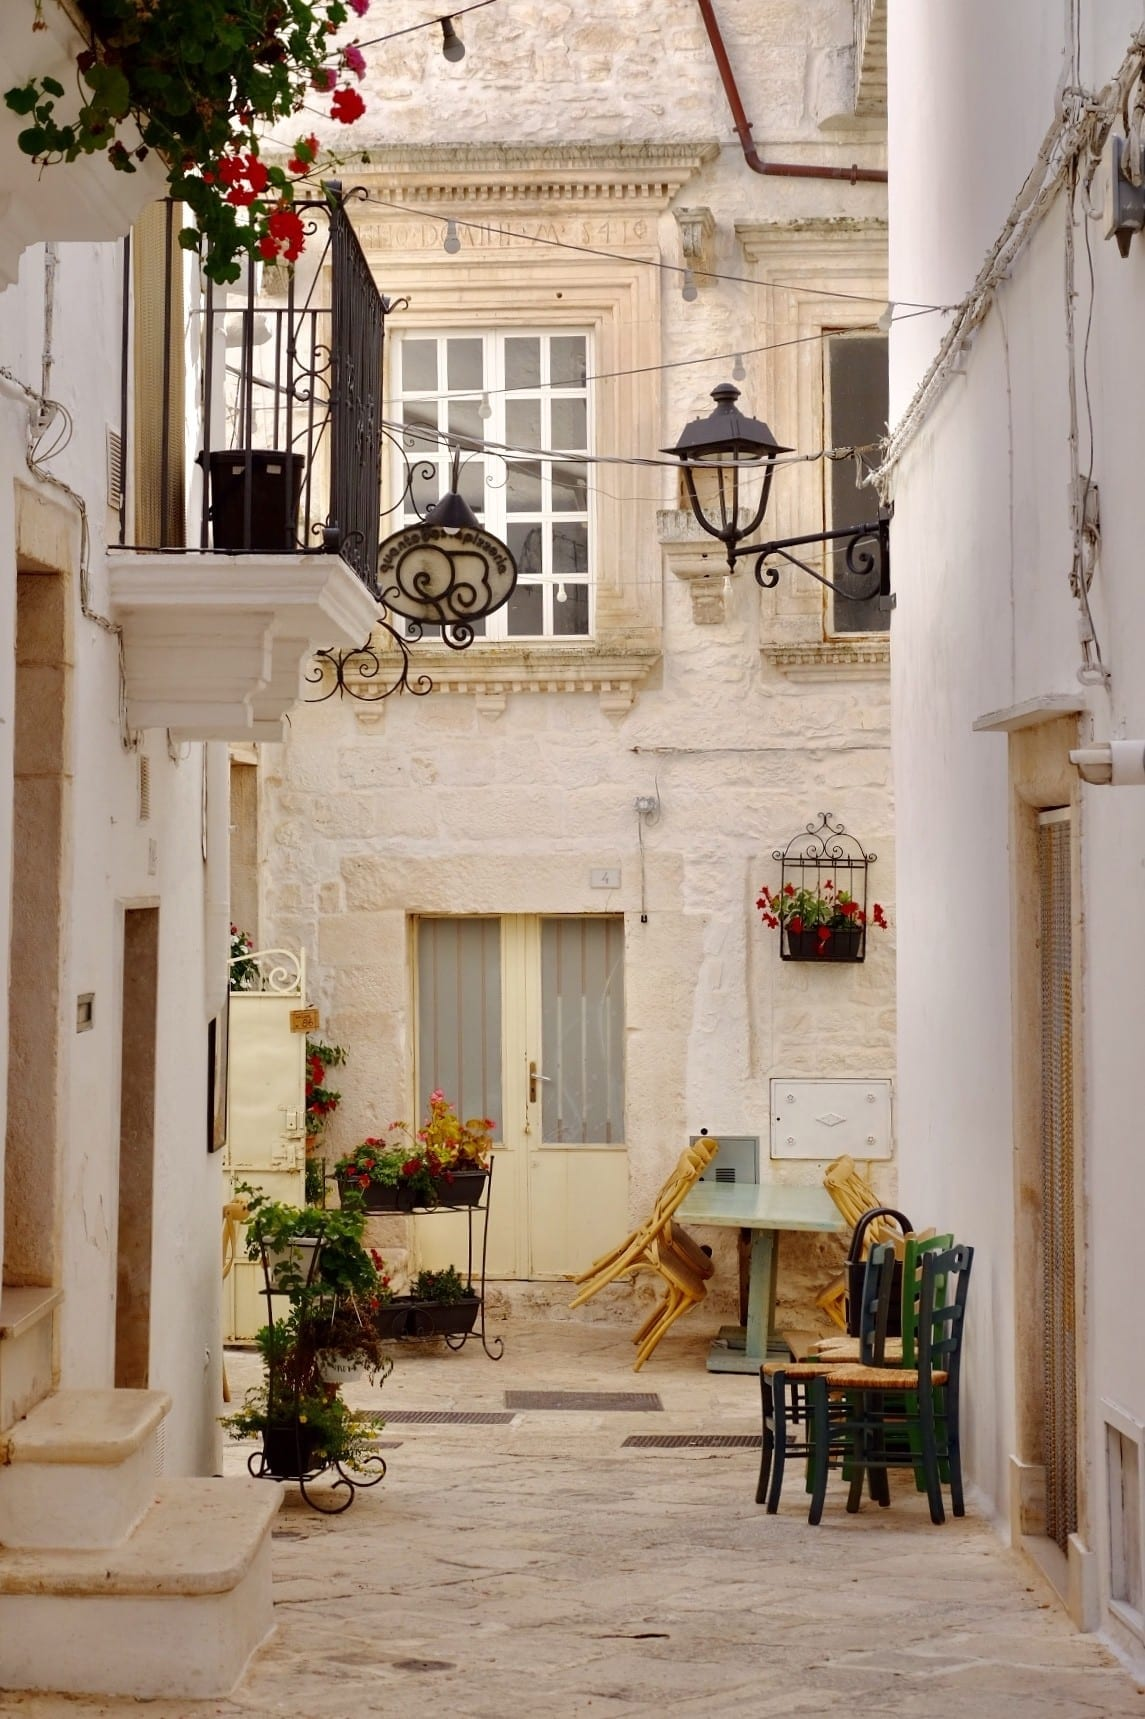 A street in the white city of Locorotondo in Puglia: all white and green. White city walls, green chairs next to a wall, green plants everywhere, black iron streetlamp. A perfect Italian town.